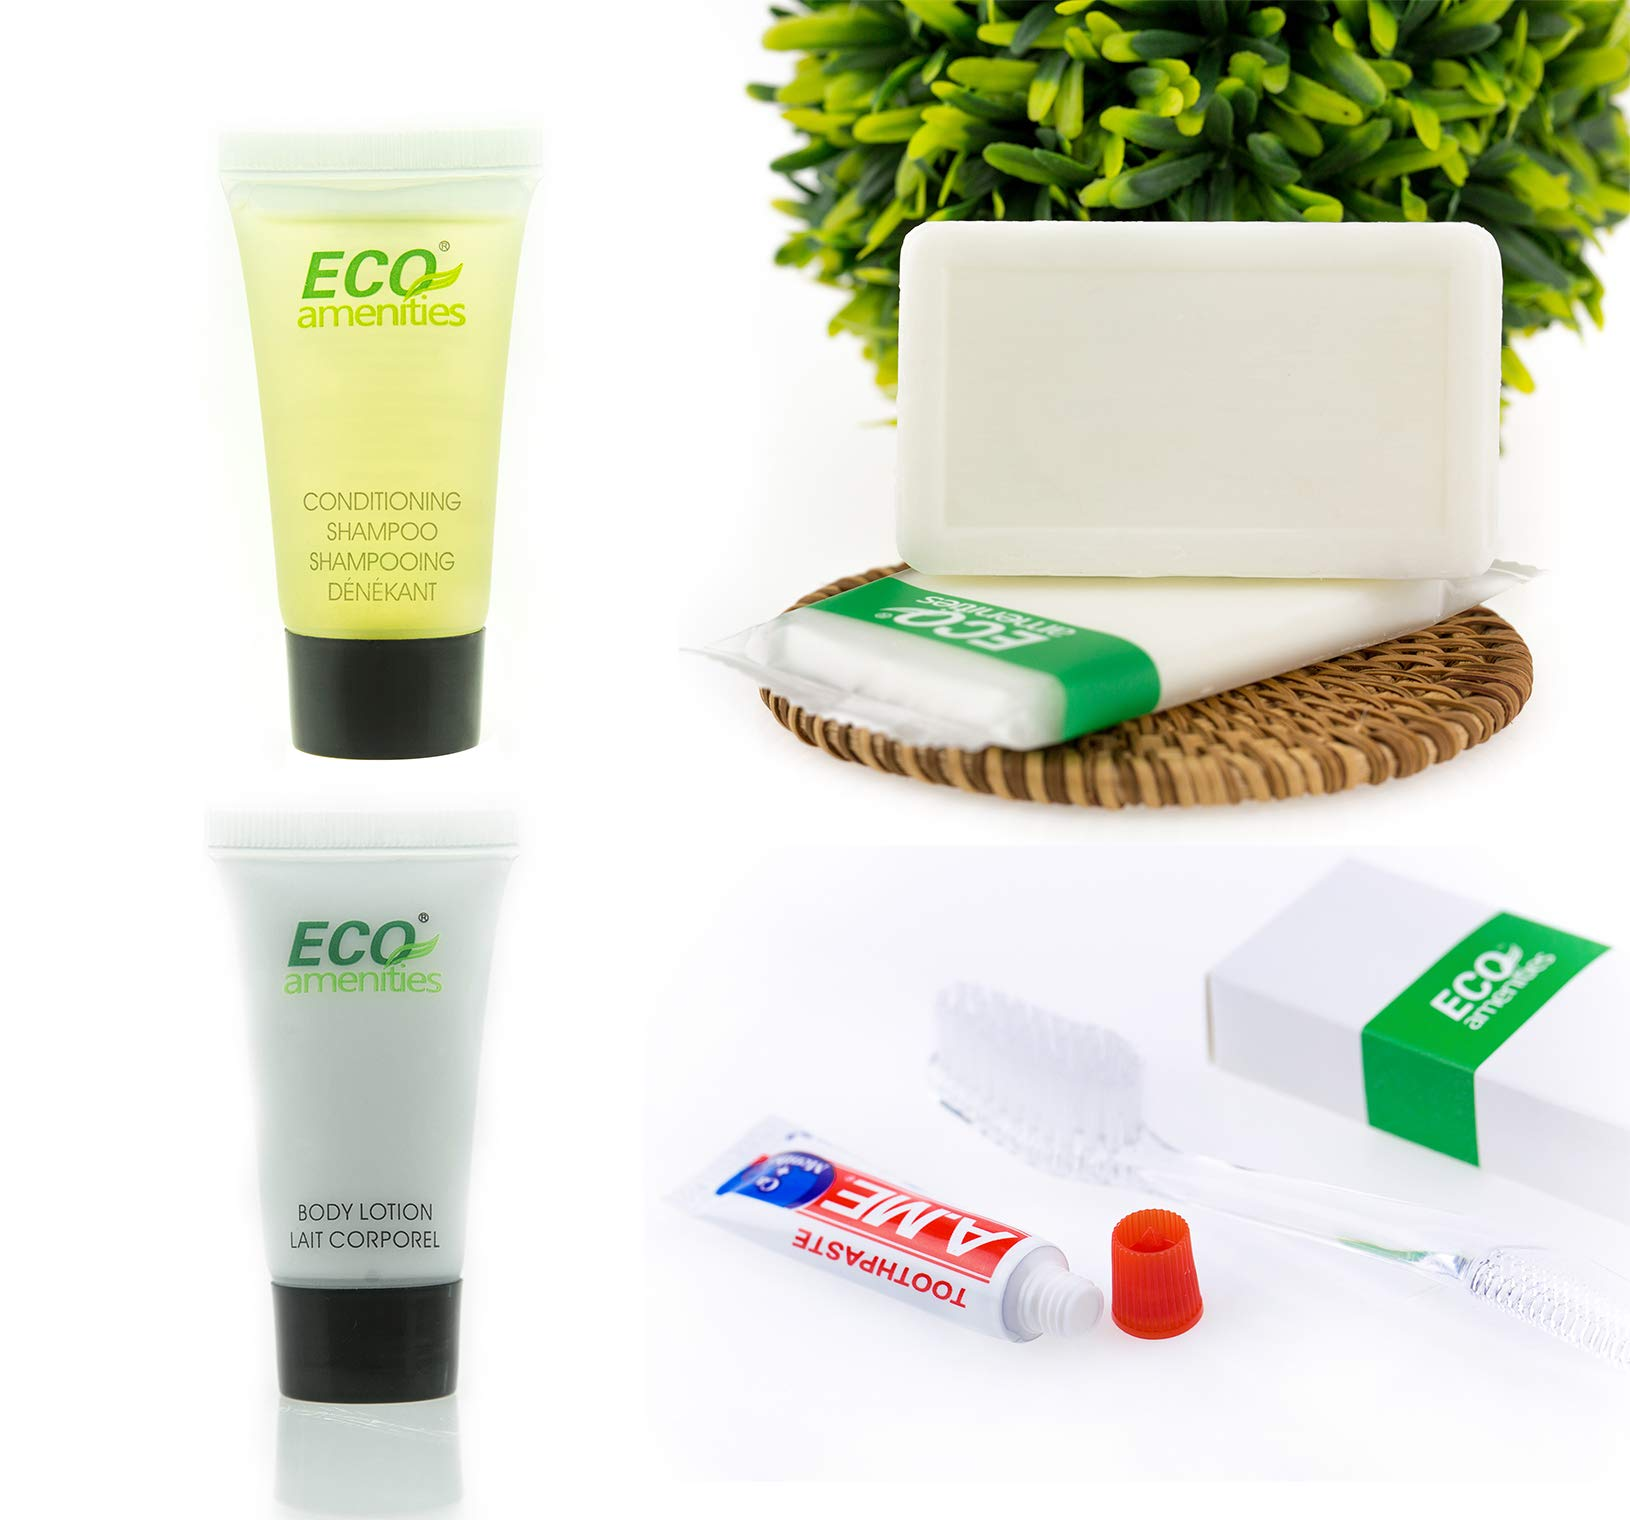 ECO Amenities Hotel Soap, Body Lotion, Mini Size Shampoo and Conditioner and Disposable Toothbrush with Toothpaste 4-Piece Hotel Toiletries in Travel Size for Guest, 15 Pack by ECO Amenities